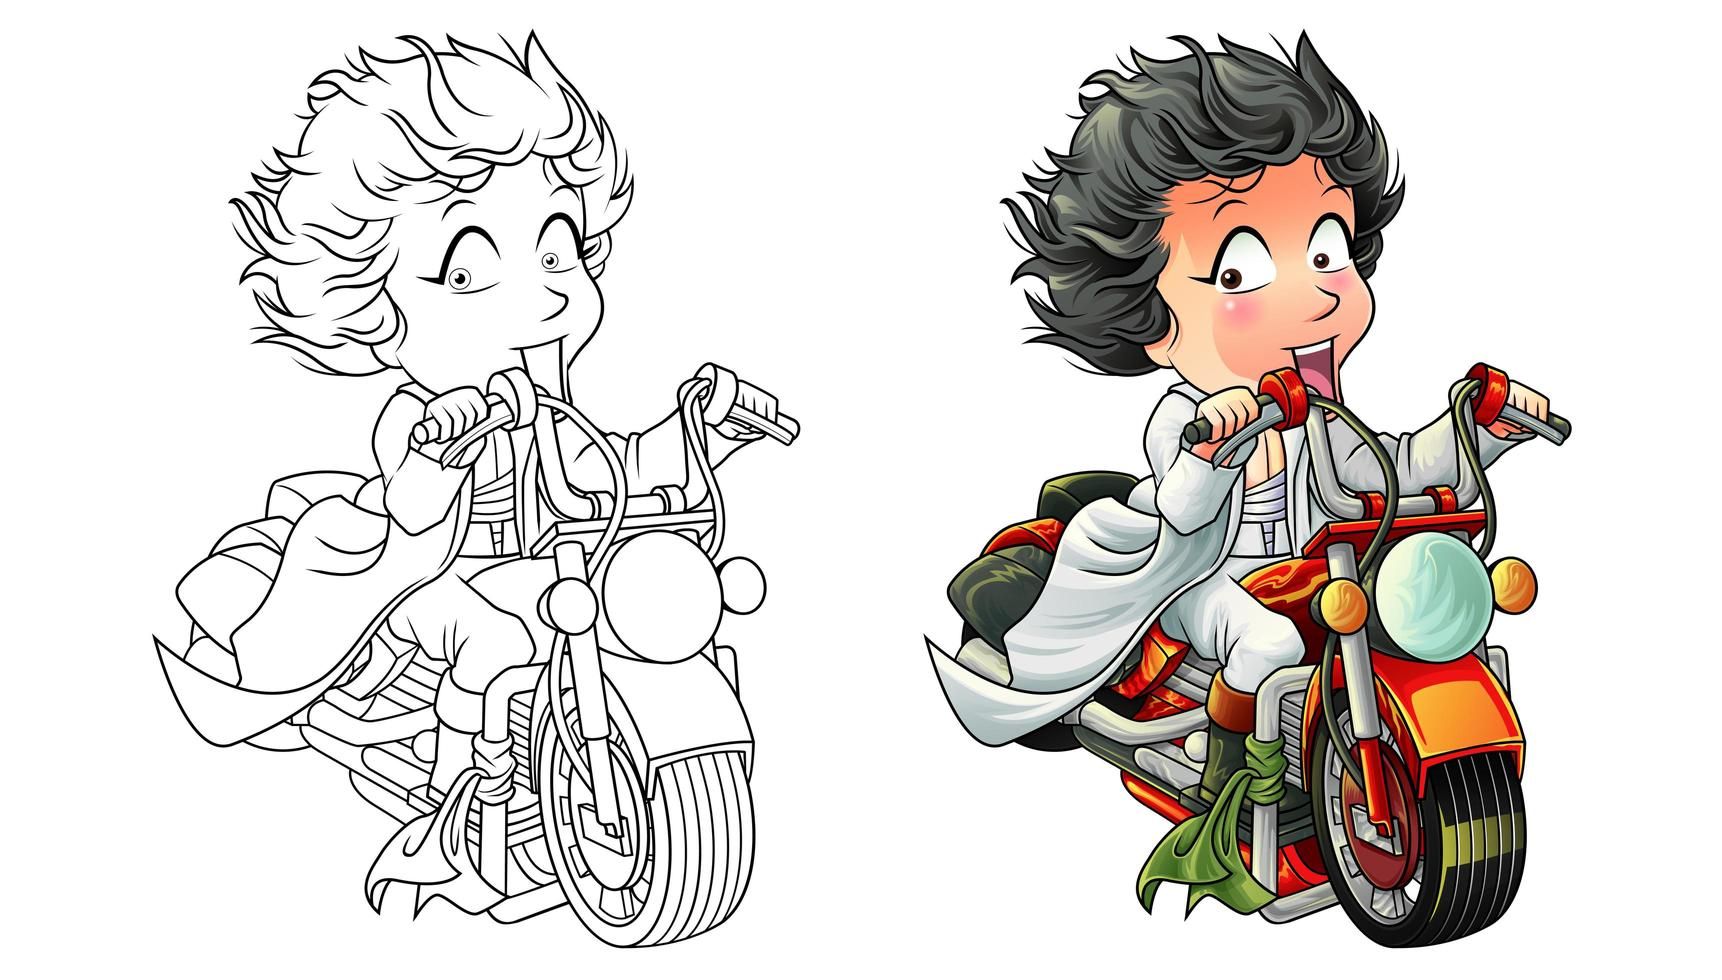 Cute rider cartoon coloring page for kids vector